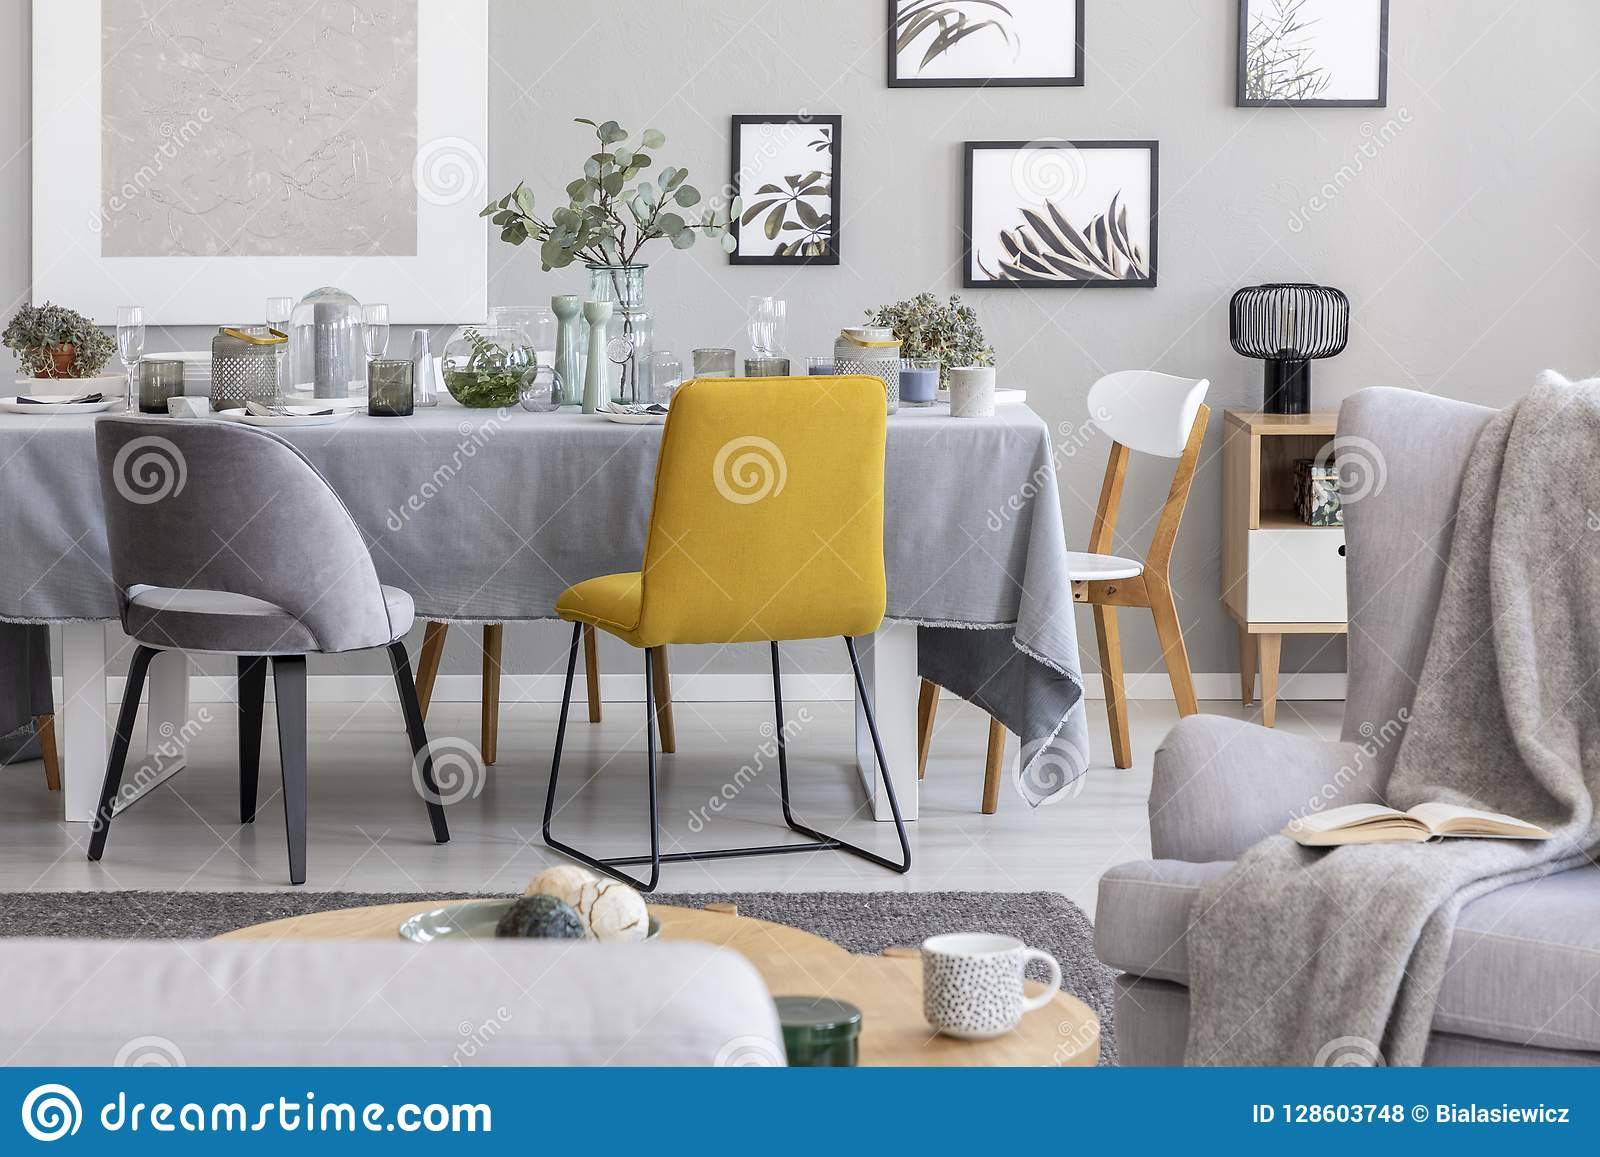 Yellow Chair Next To A Table In A Grey Dining Room Interior